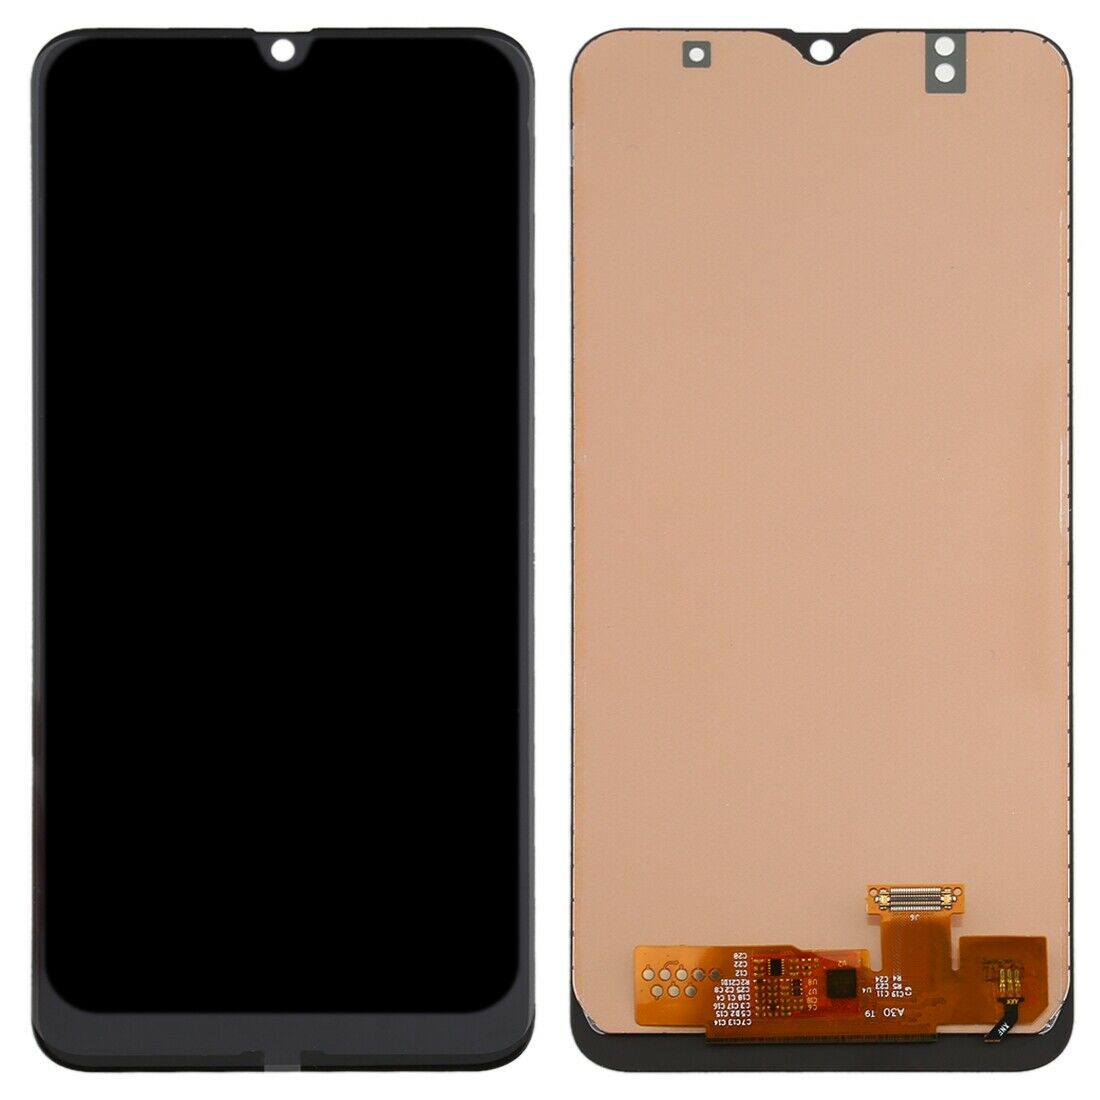 Touch Screen Display LCD per Samsung Galaxy A50 2019 SM-A505FN SM-A505DS +kit smontaggio biadesivo e colla b7000